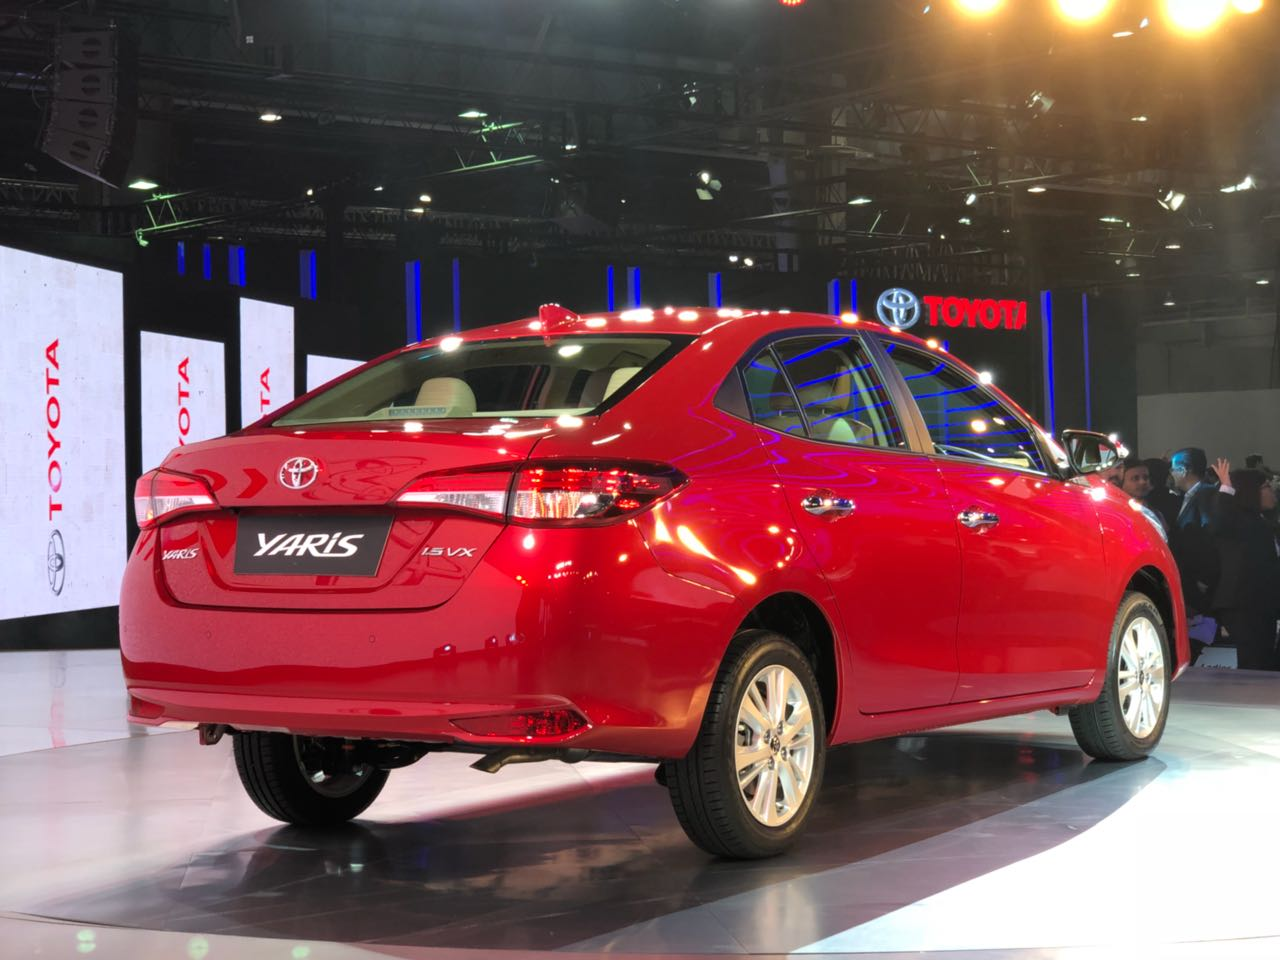 toyota yaris debuts in india at auto expo 2018 to rival honda city. Black Bedroom Furniture Sets. Home Design Ideas